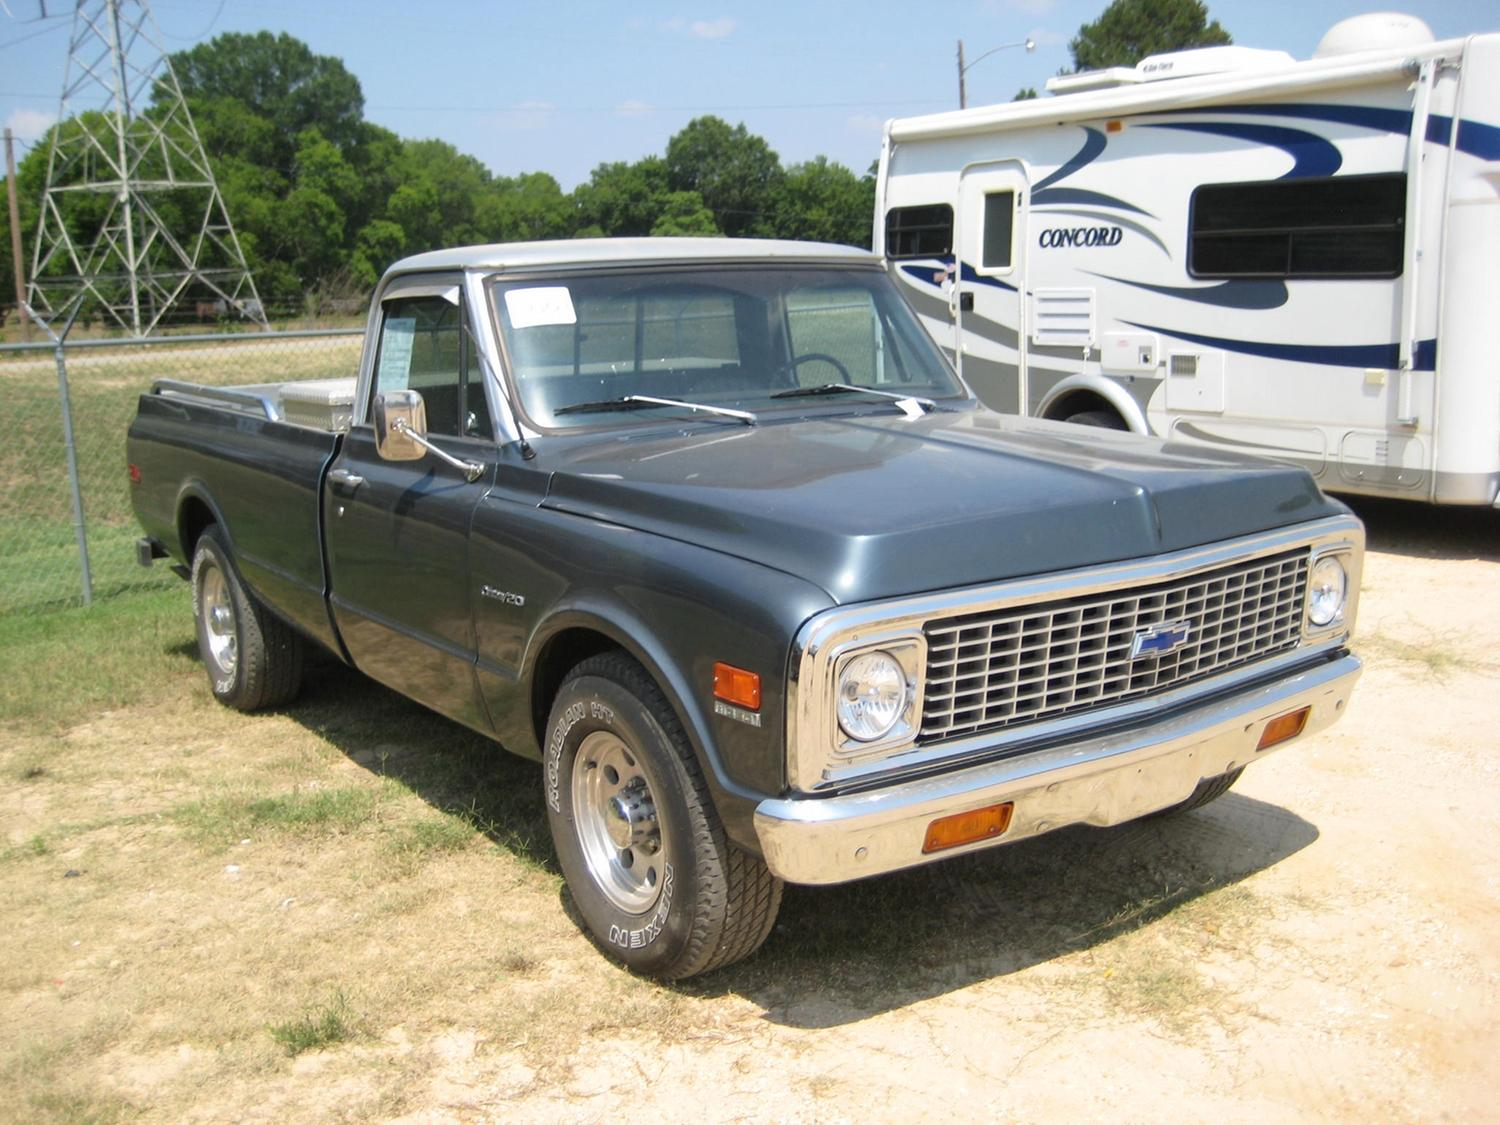 small resolution of image 1 1972 chevrolet c20 pickup